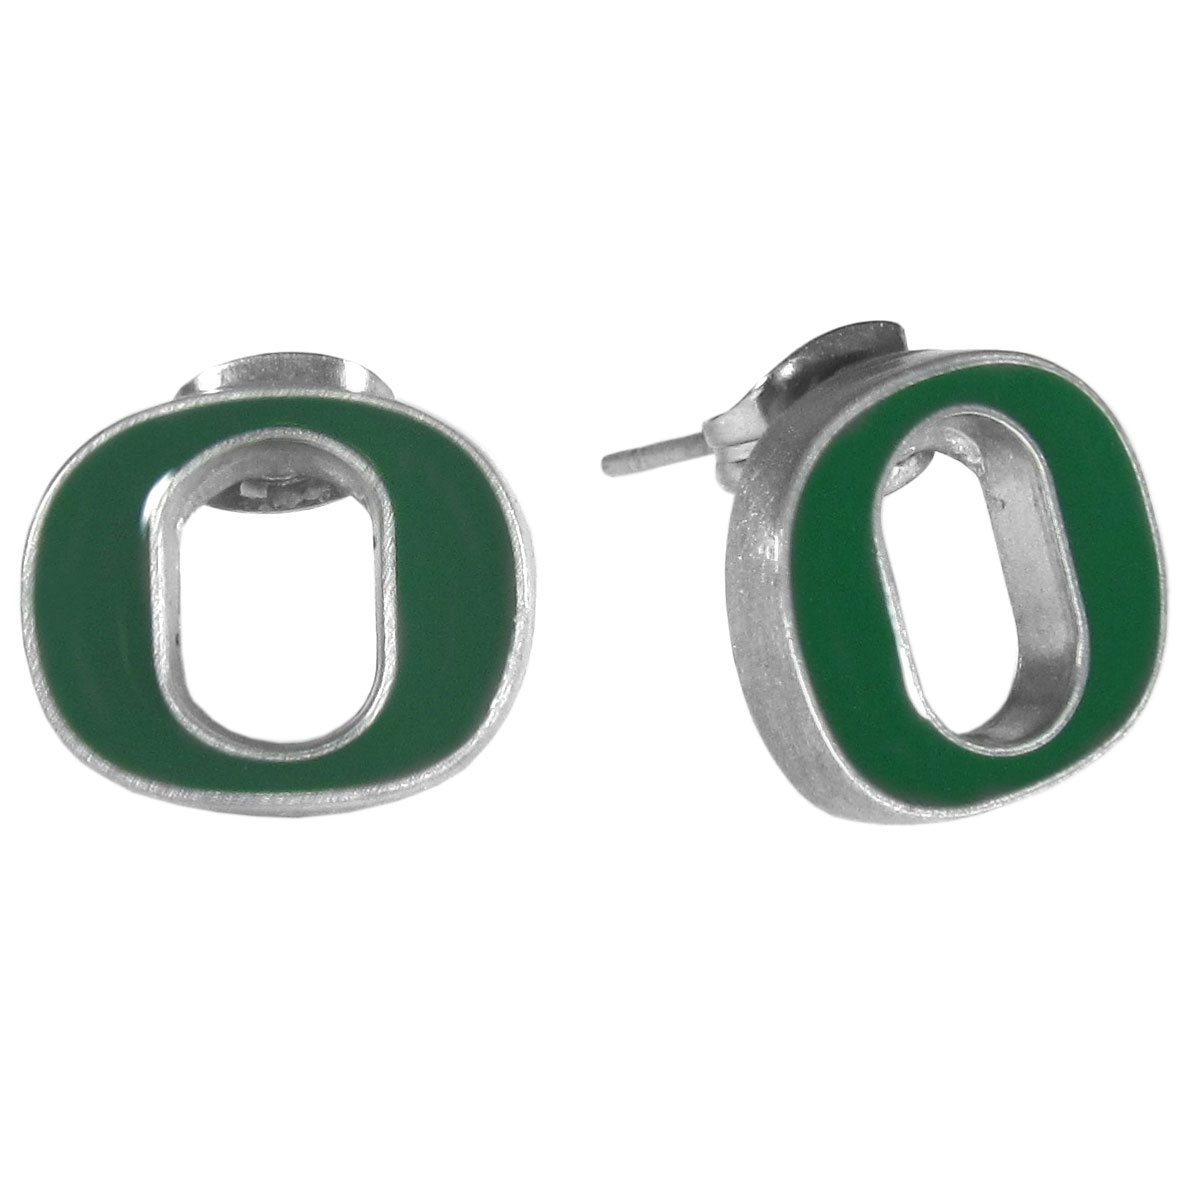 Oregon Ducks Stud Earrings - Big and flashy isn't for every woman. These 1/2 inch stud earrings offer a small option that still shows she is a true Oregon Ducks fan. The earrings have hypoallergenic posts.